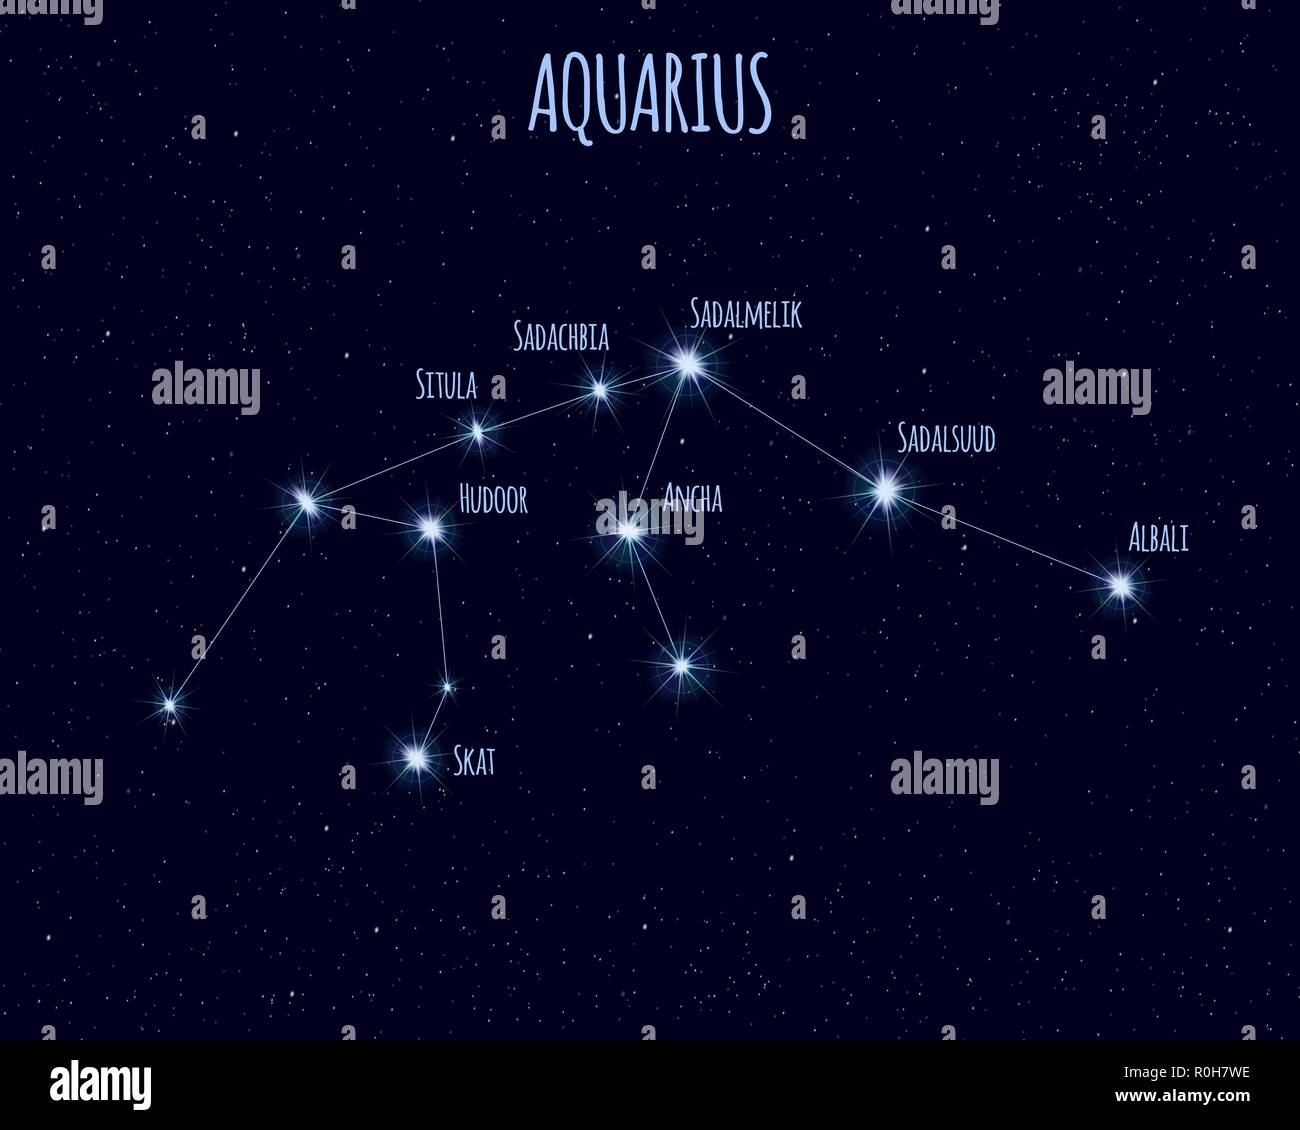 Aquarius constellation, vector illustration with the names of basic stars against the starry sky - Stock Image